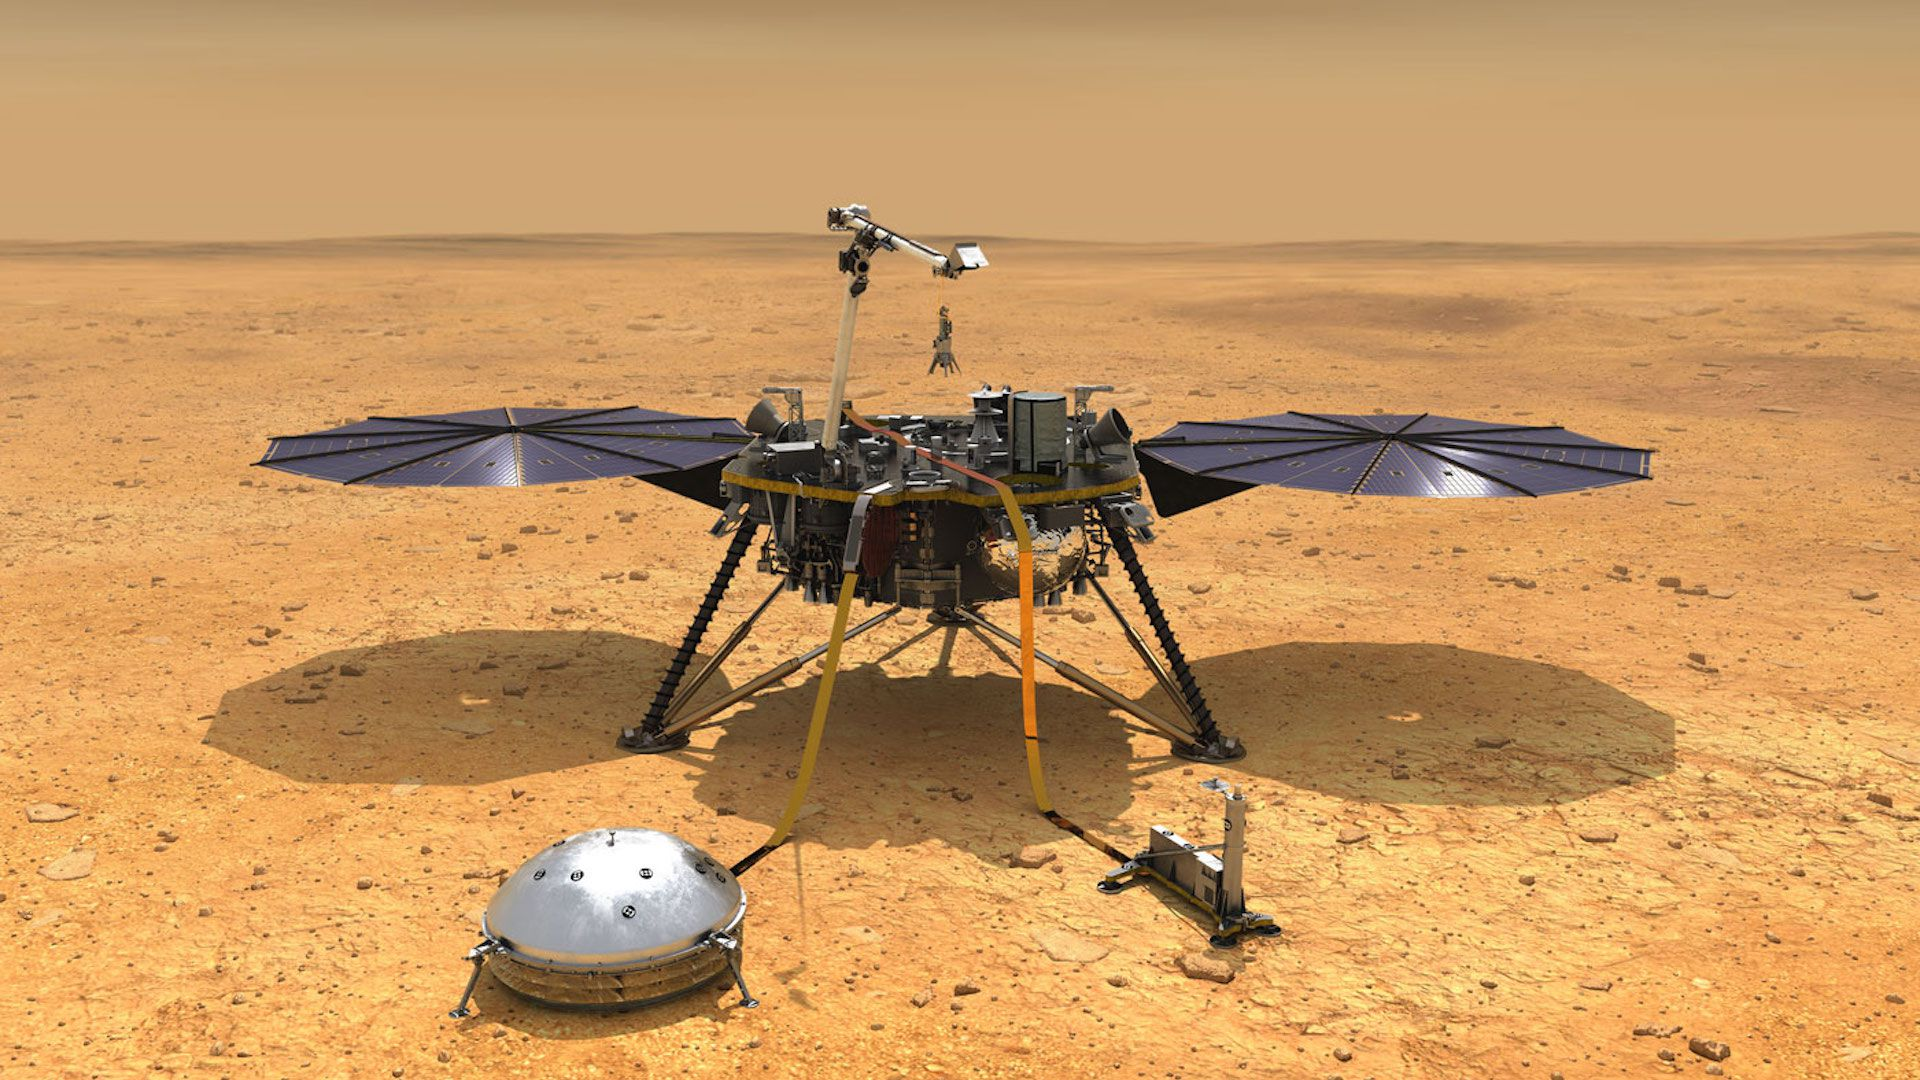 Artist's image of the NASA Mars InSight lander on the Mars surface.